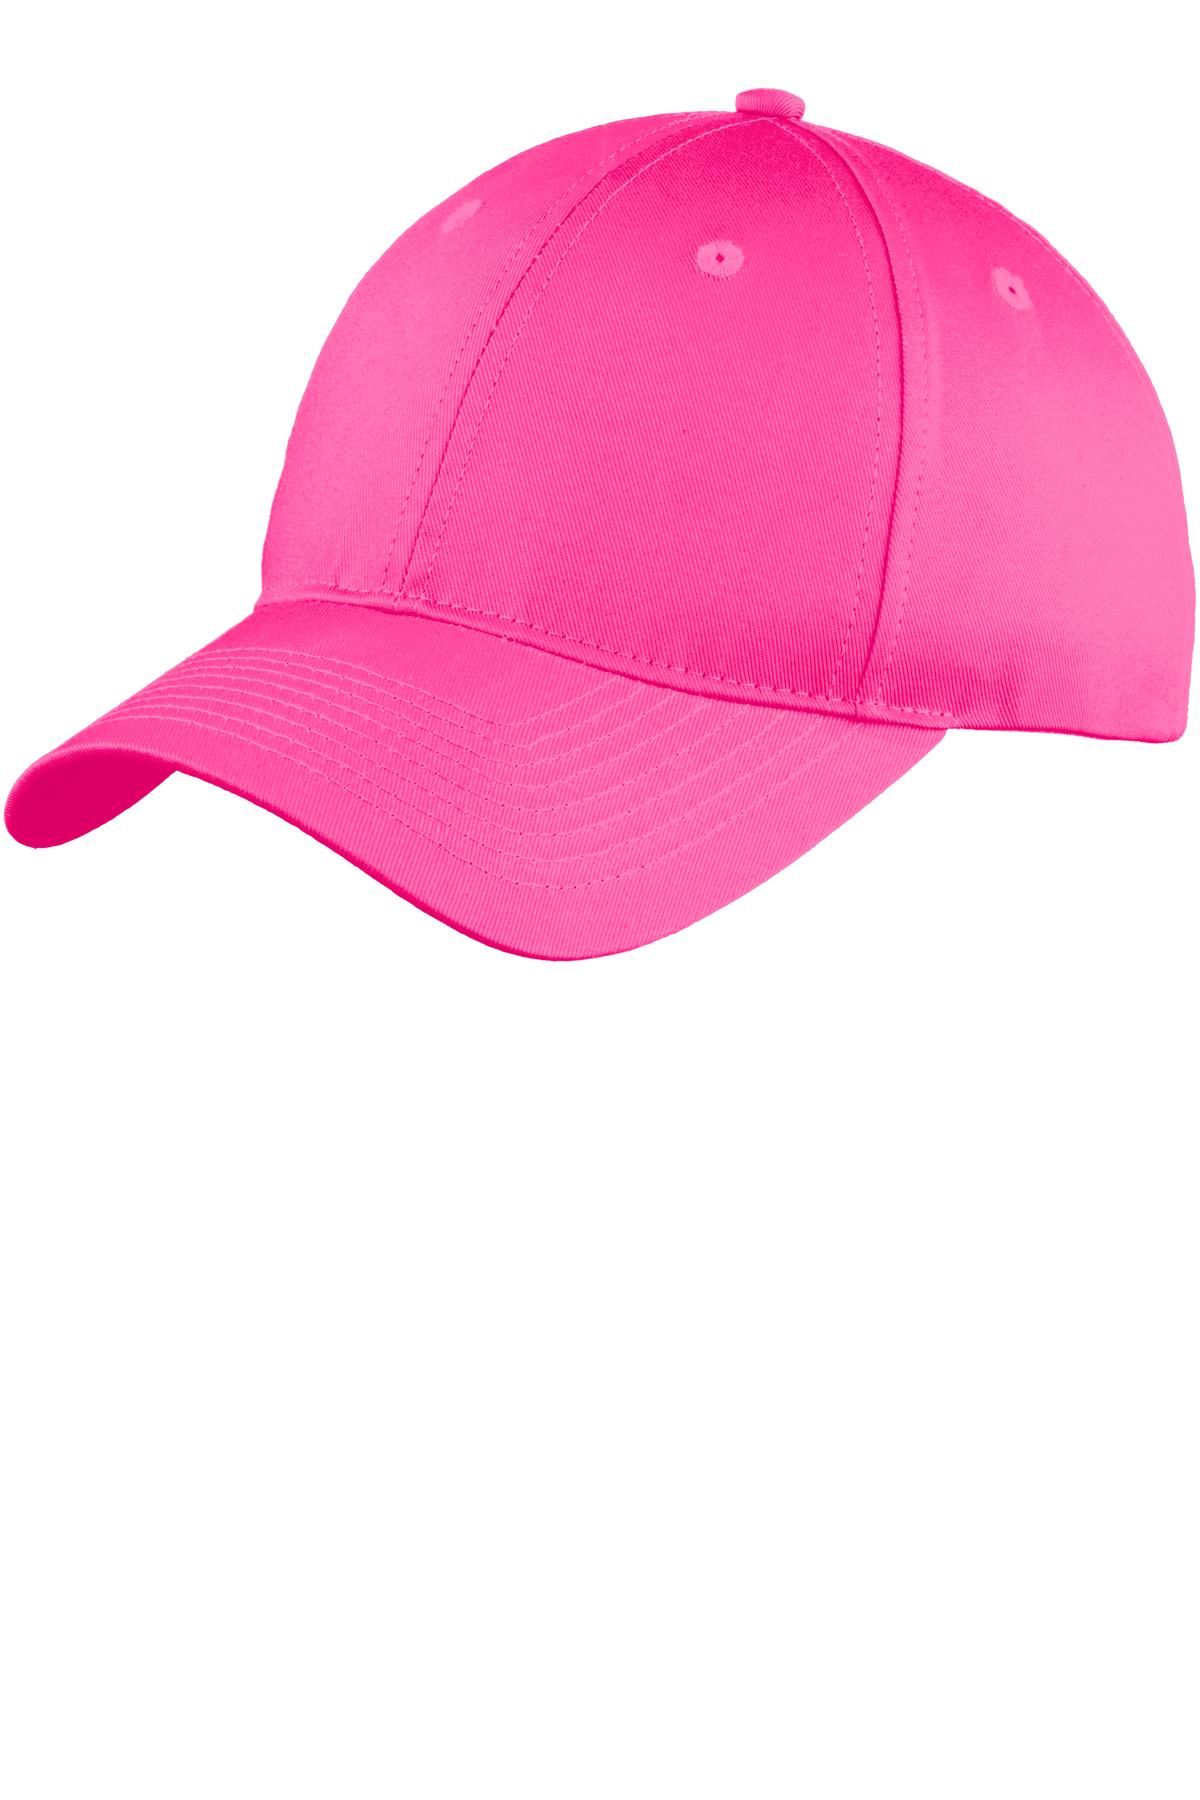 Port & Company ®  Six-Panel Unstructured Twill Cap. C914 - Neon Pink